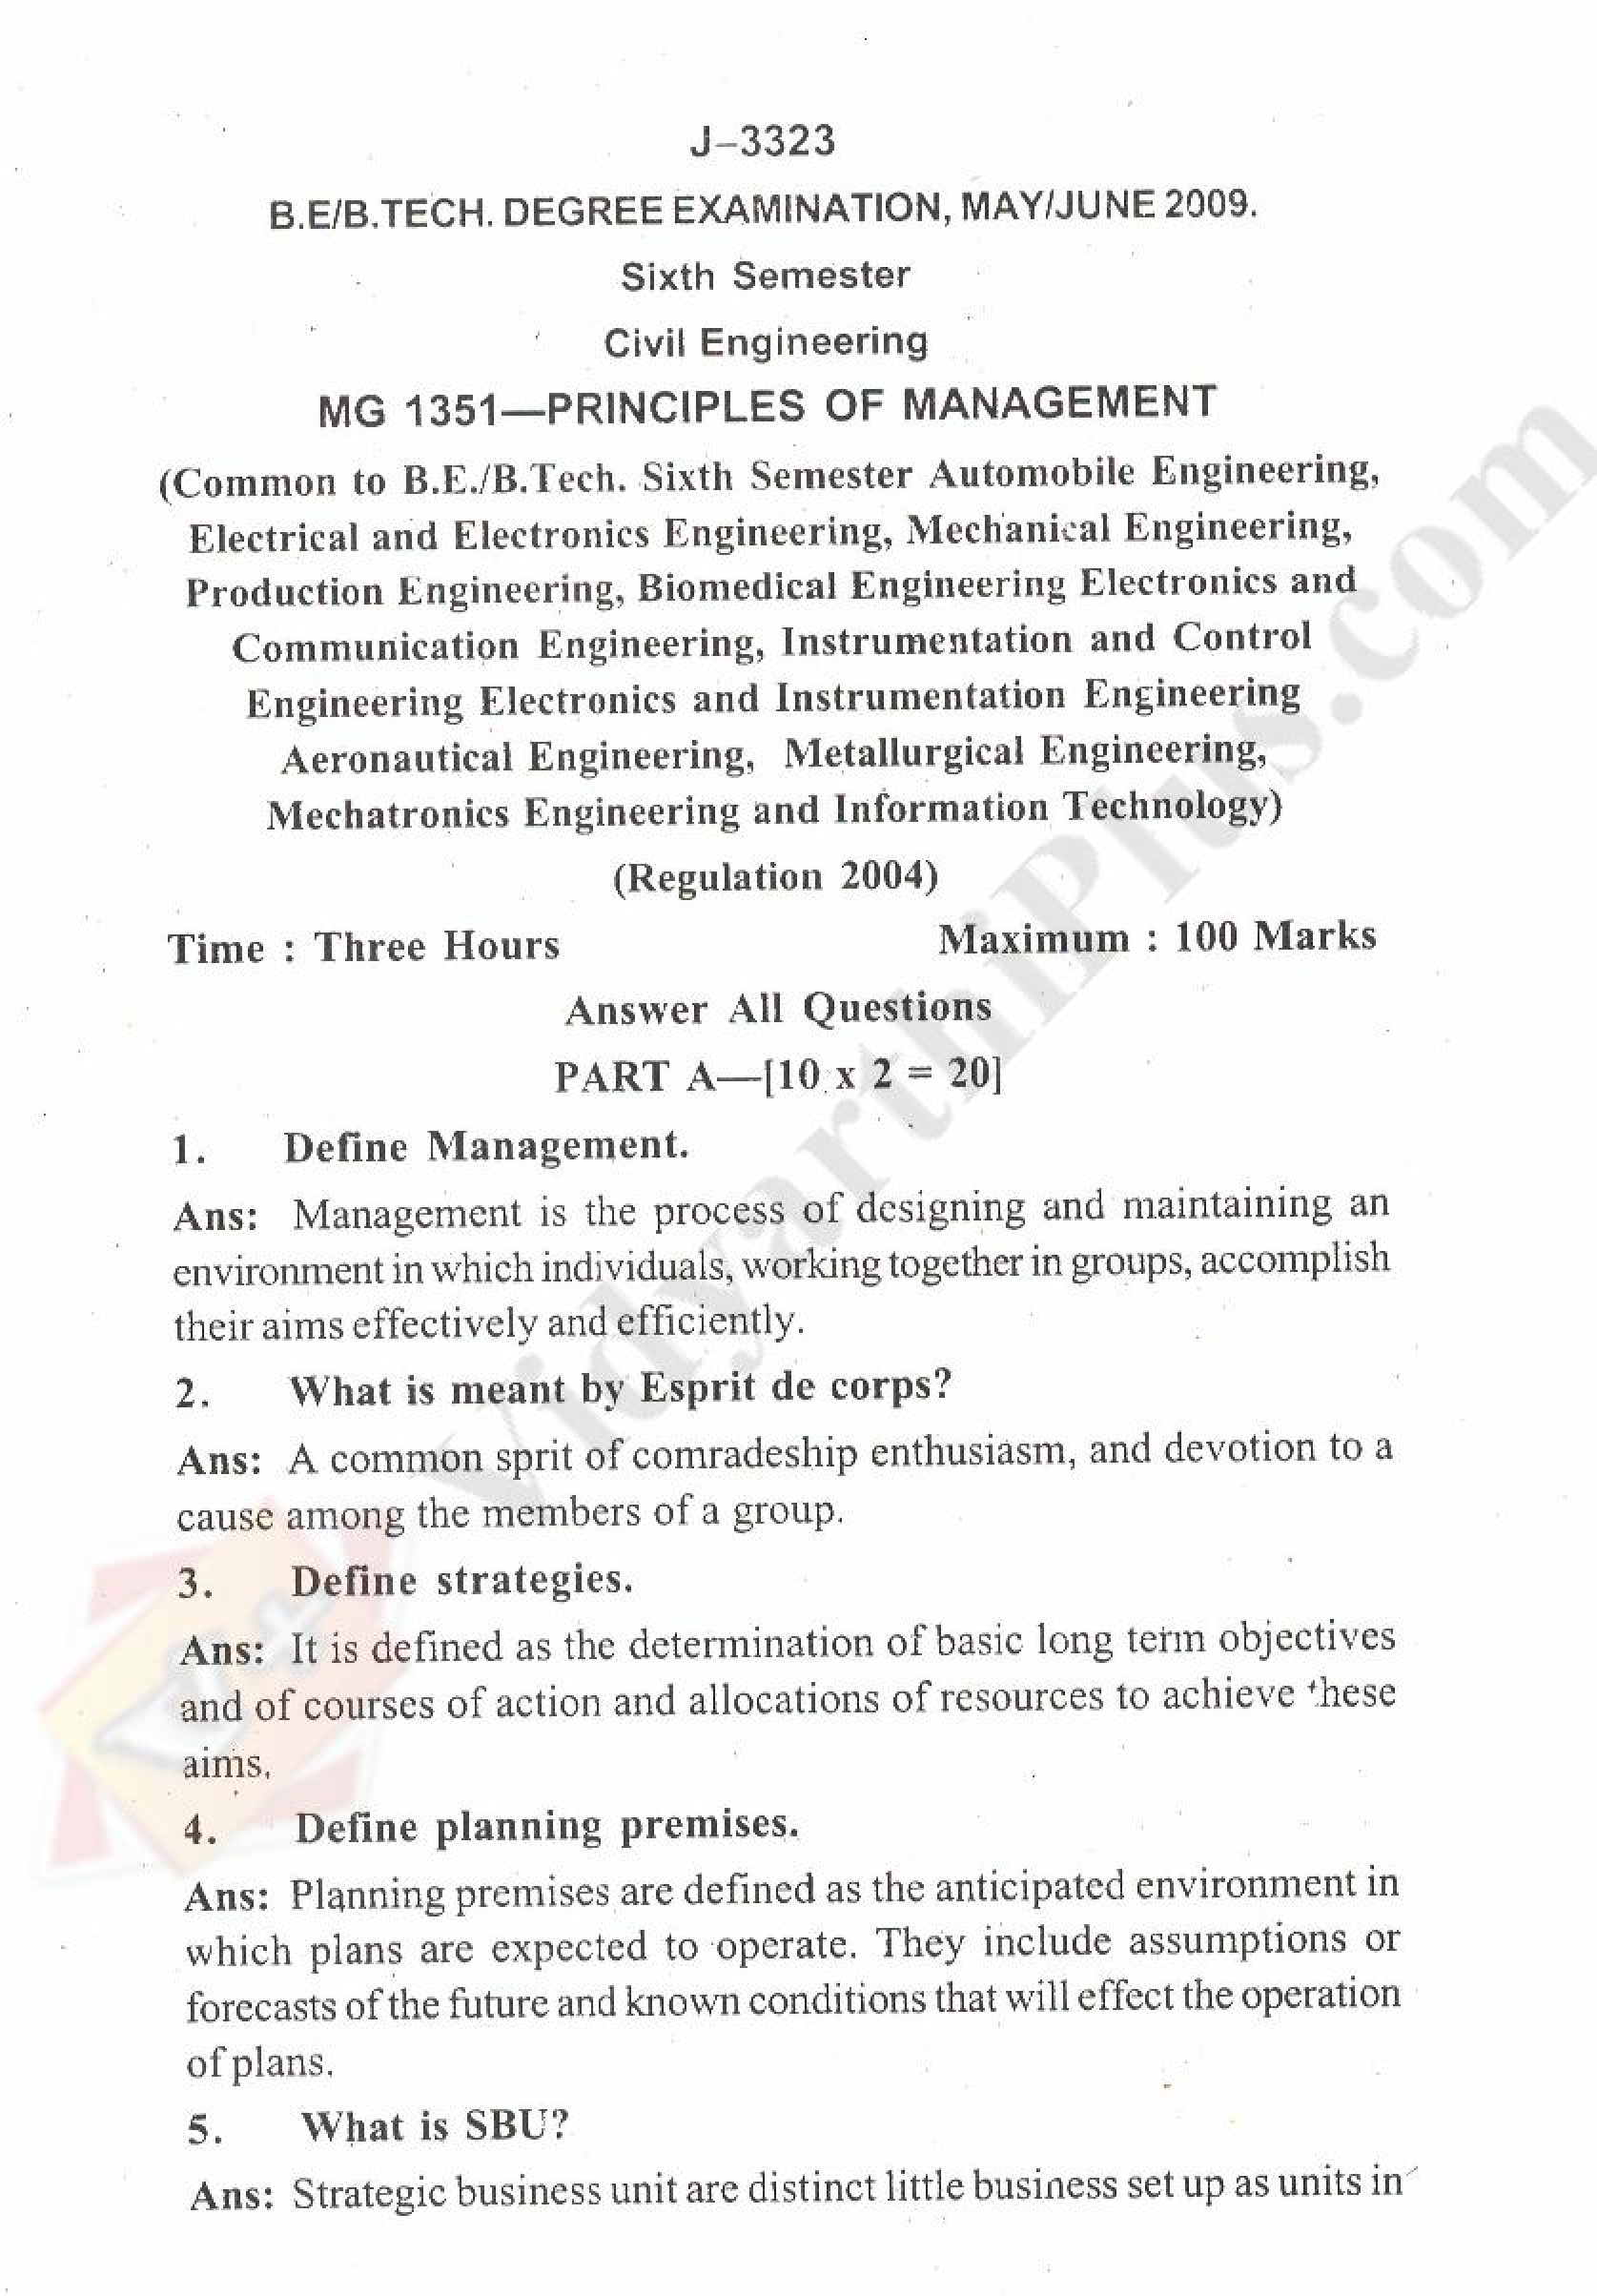 Principles Of Management Solved Question Papers - 2015 Edition